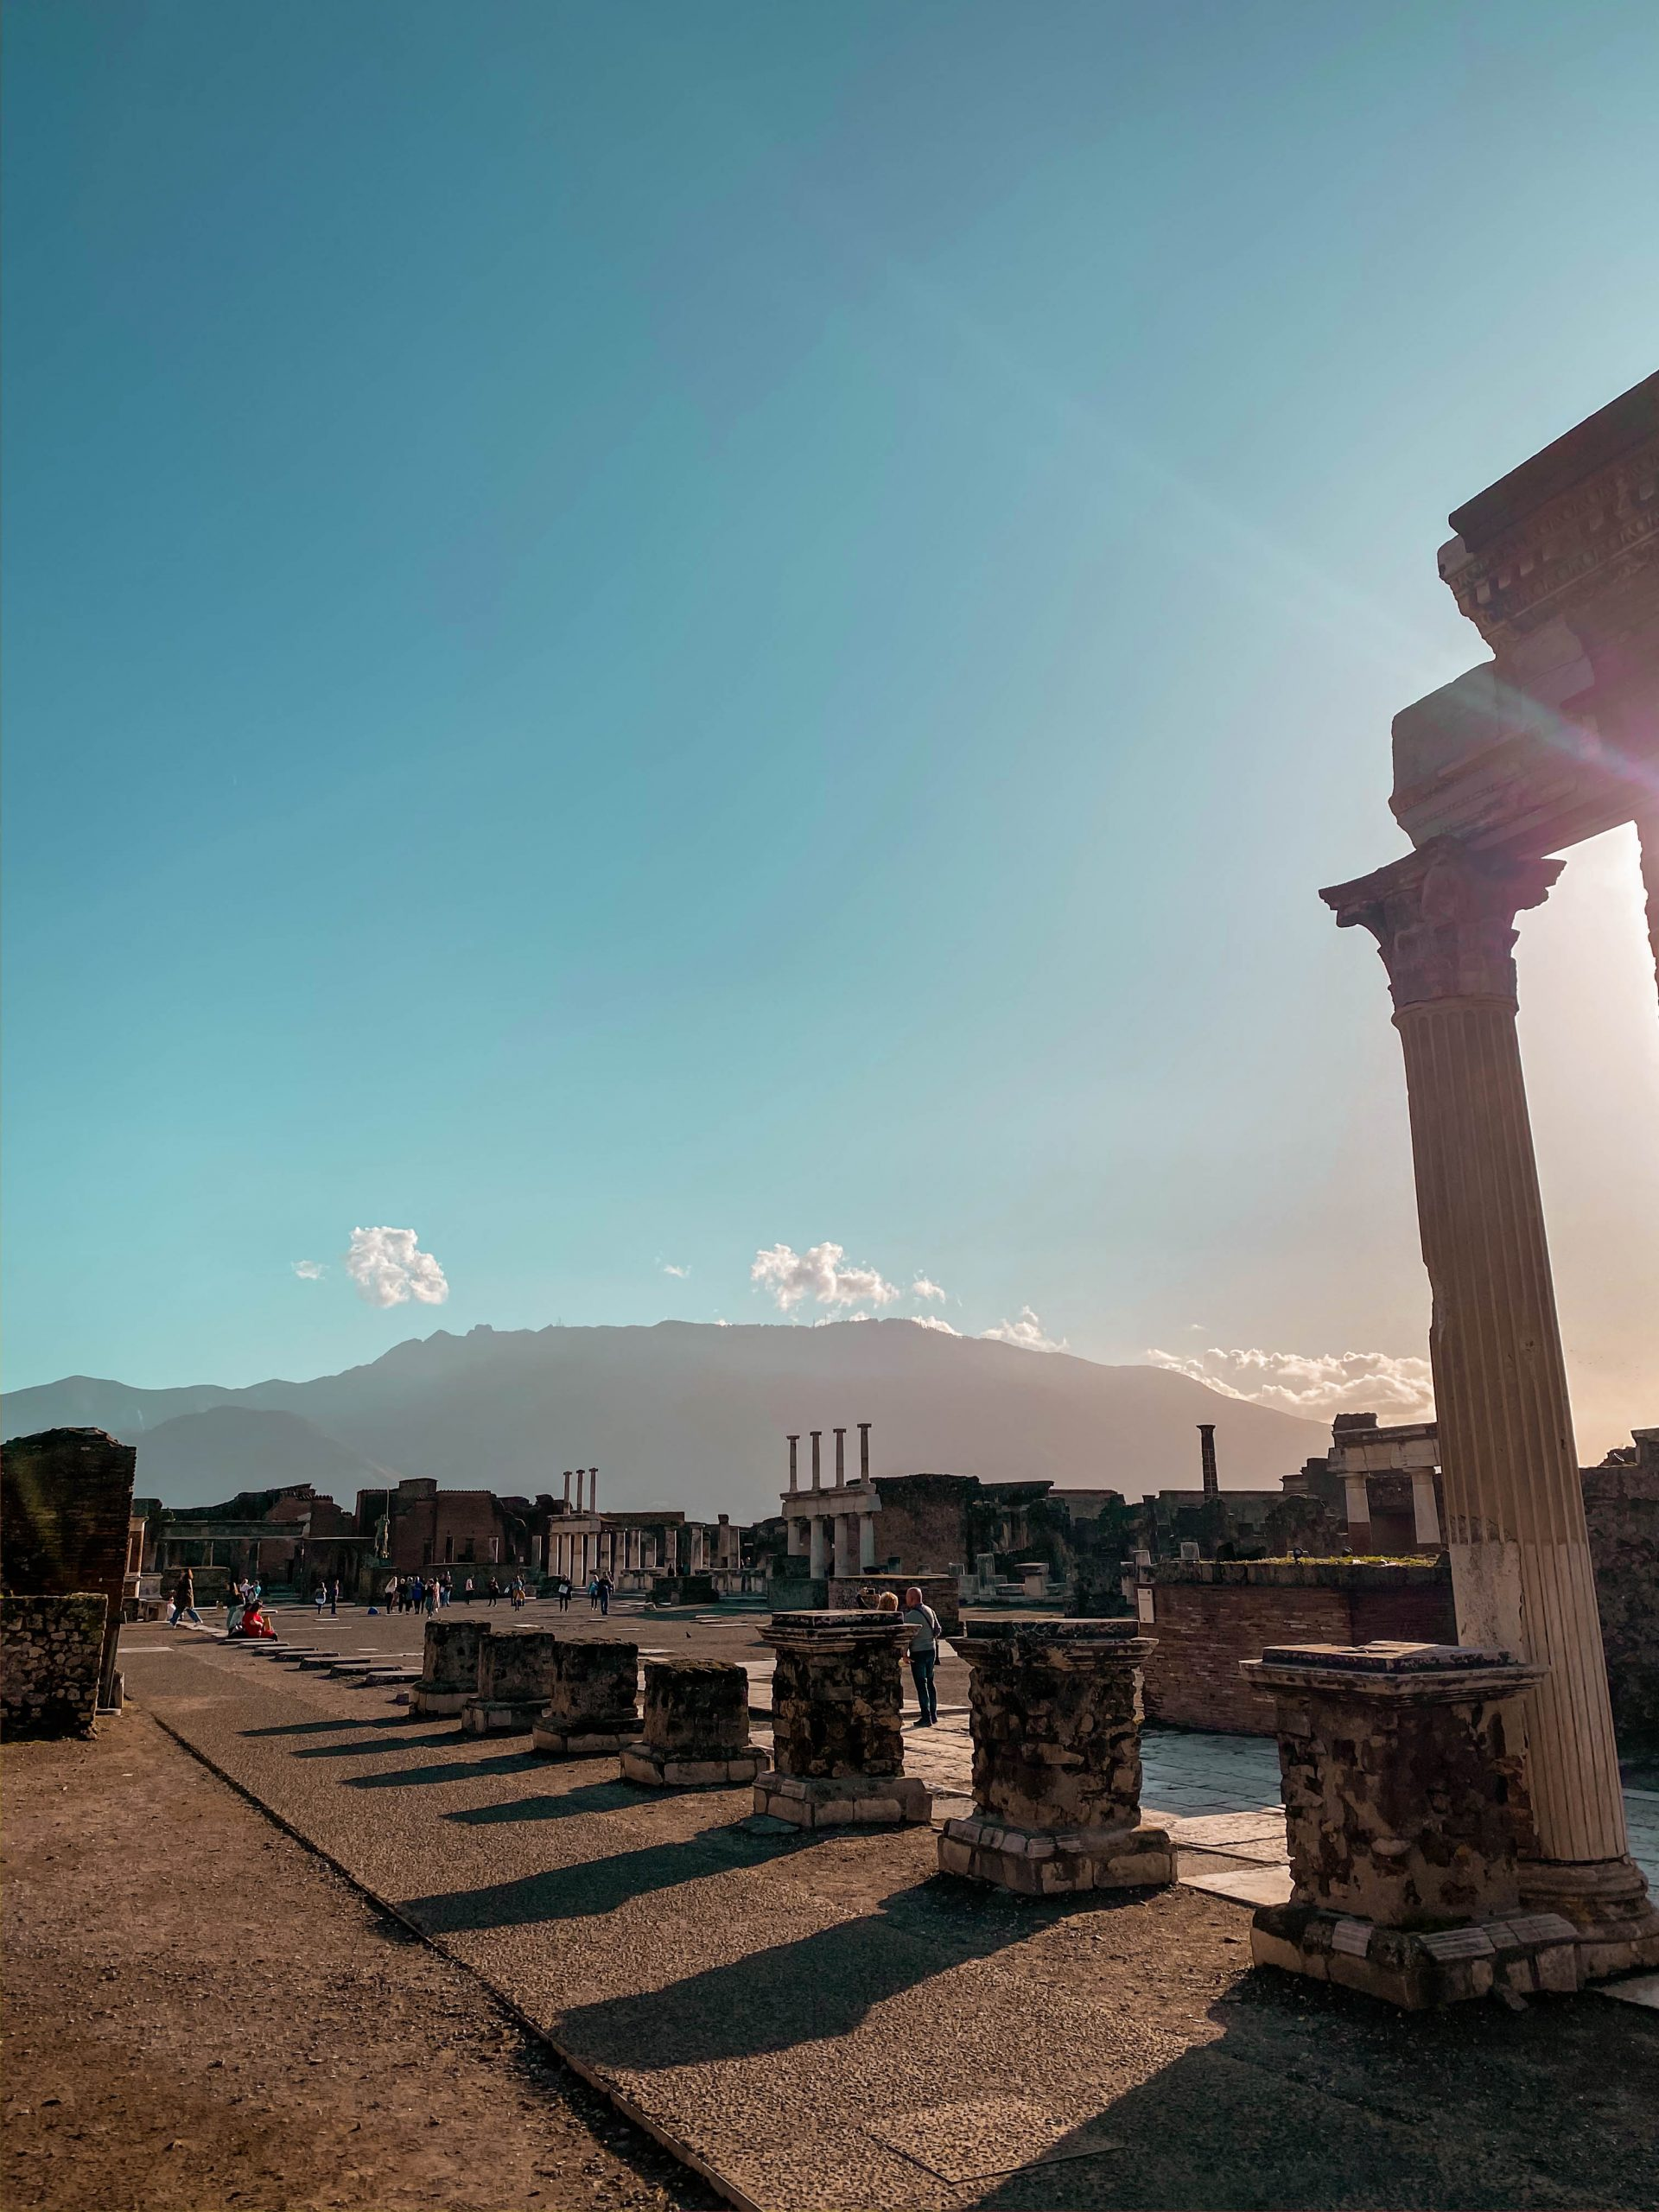 civil forum pompeii foro civile ruins ancient neoclassicism architecture columns town square